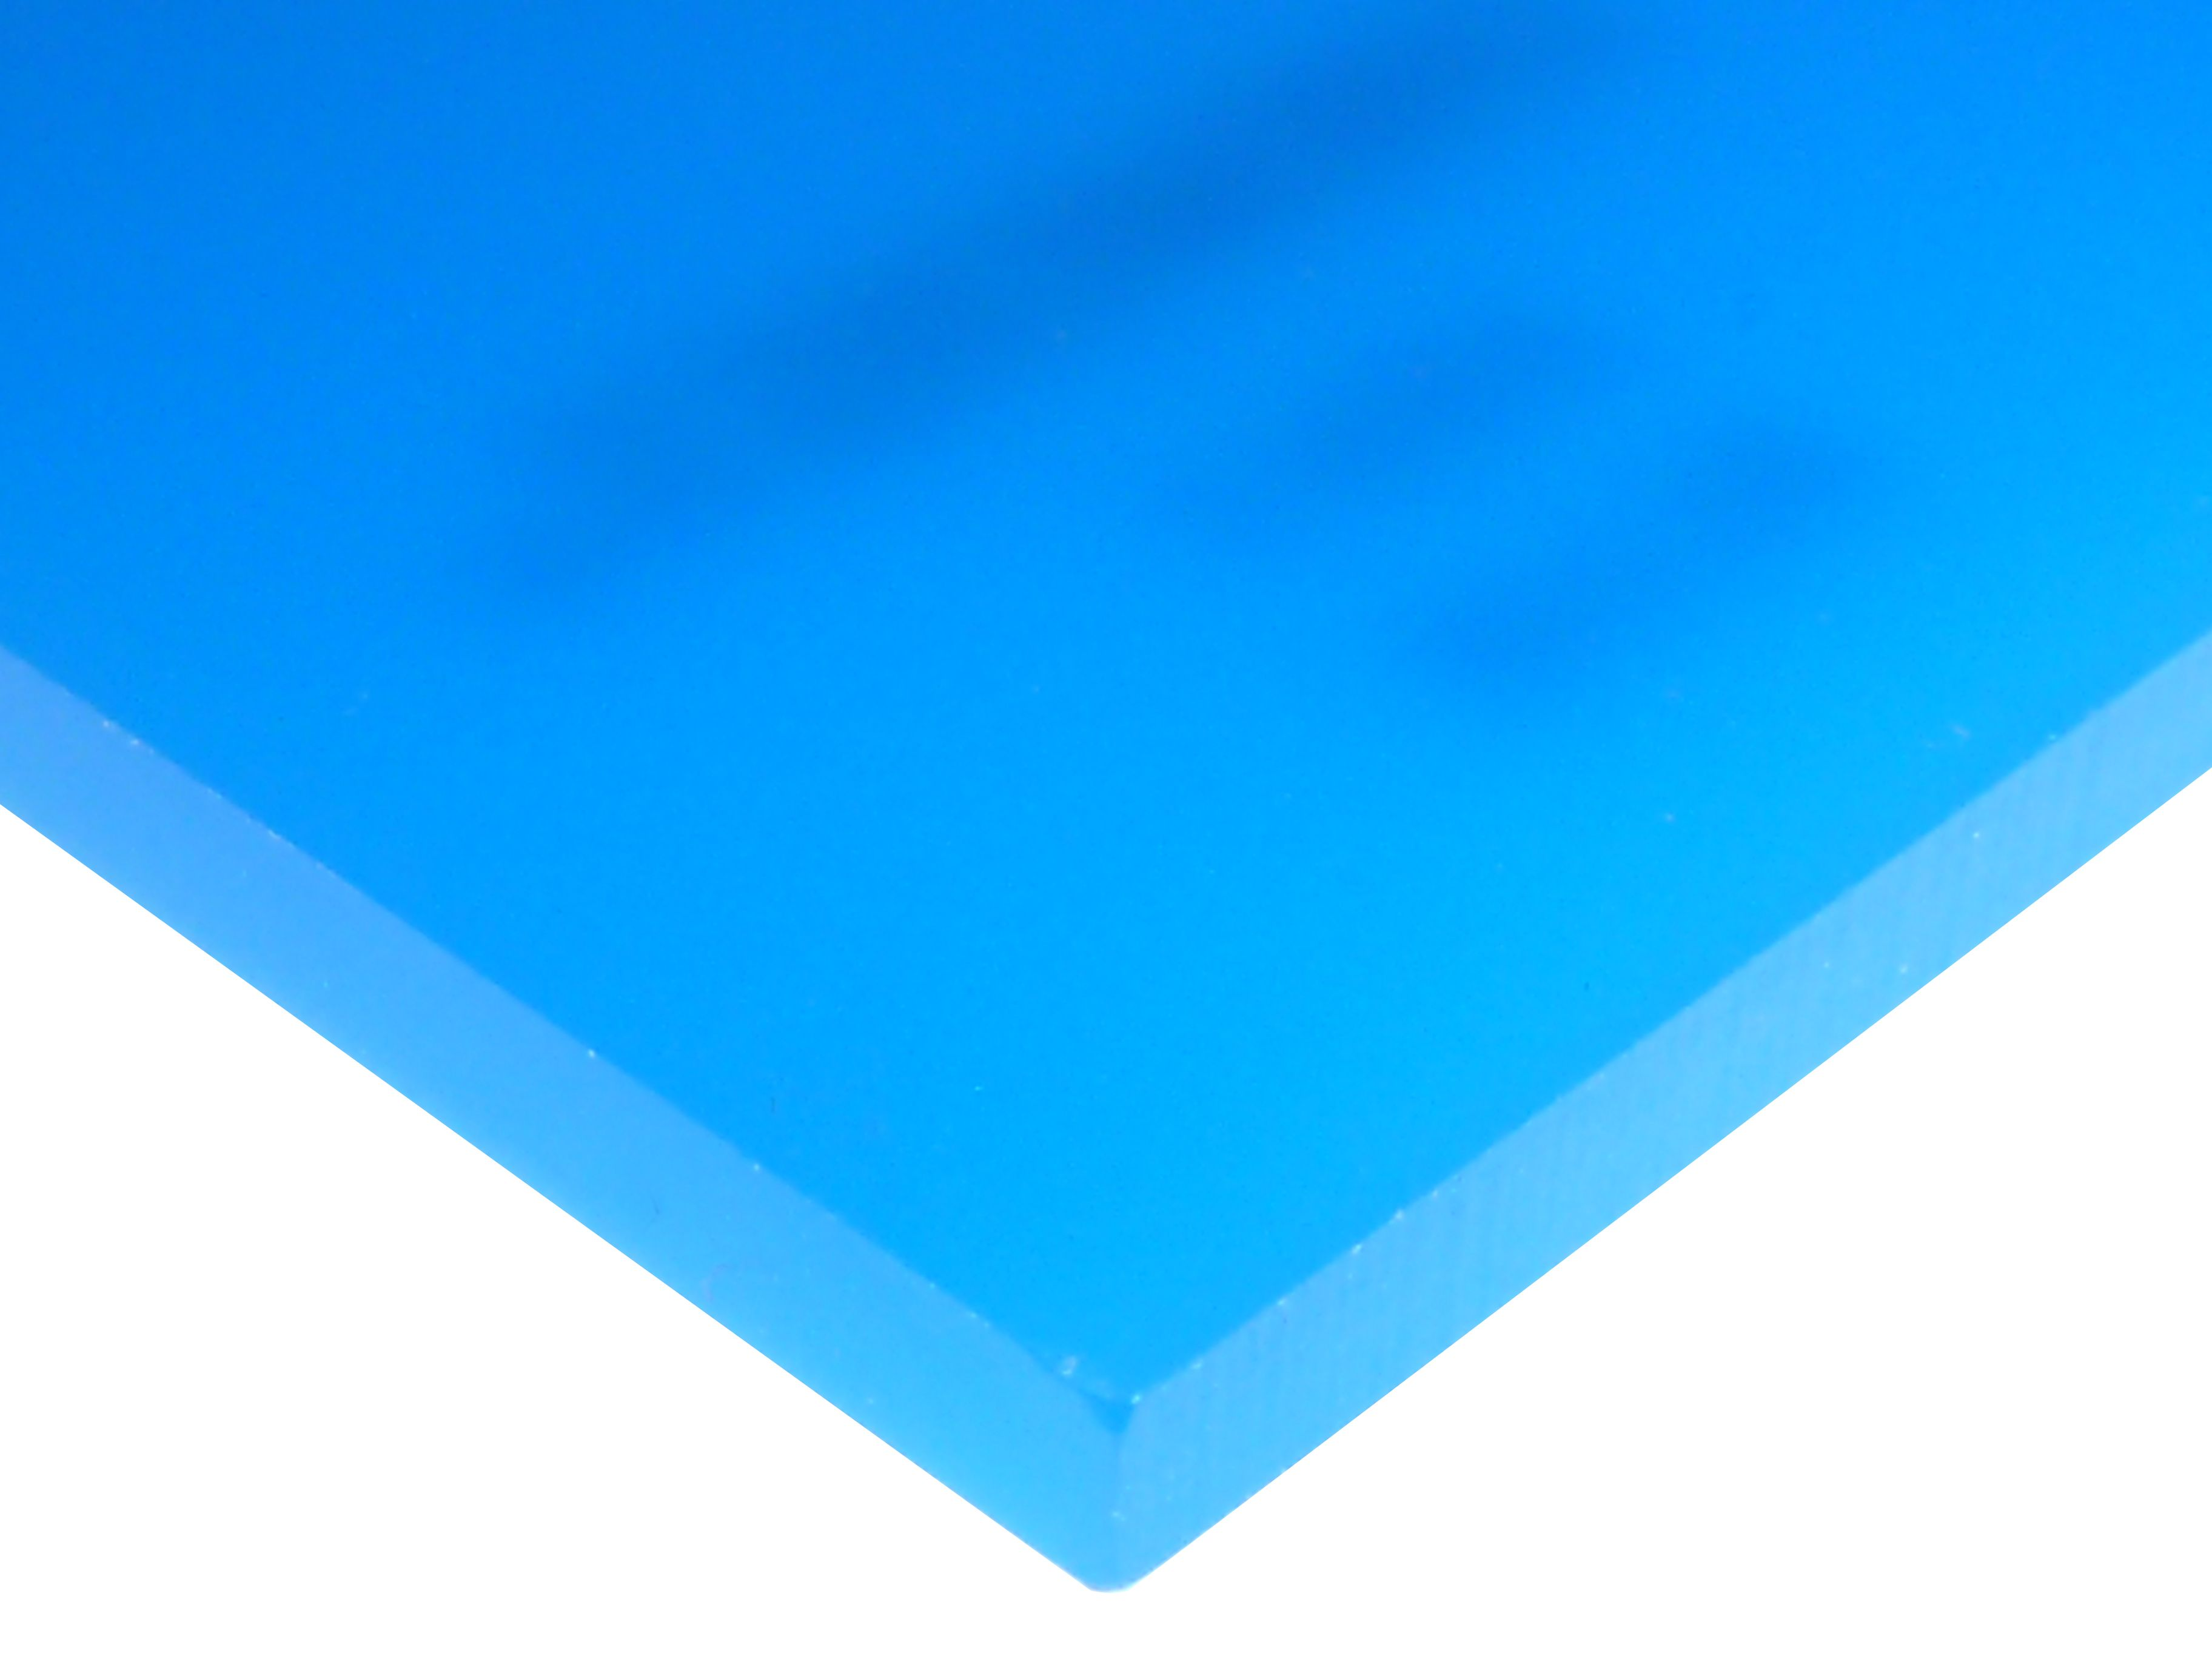 Acrylic Sheet Brown 2418 Cast Paper Masked Opaque Colored Acrylic Sheets Acrylic Sheets Acrylic Mirror